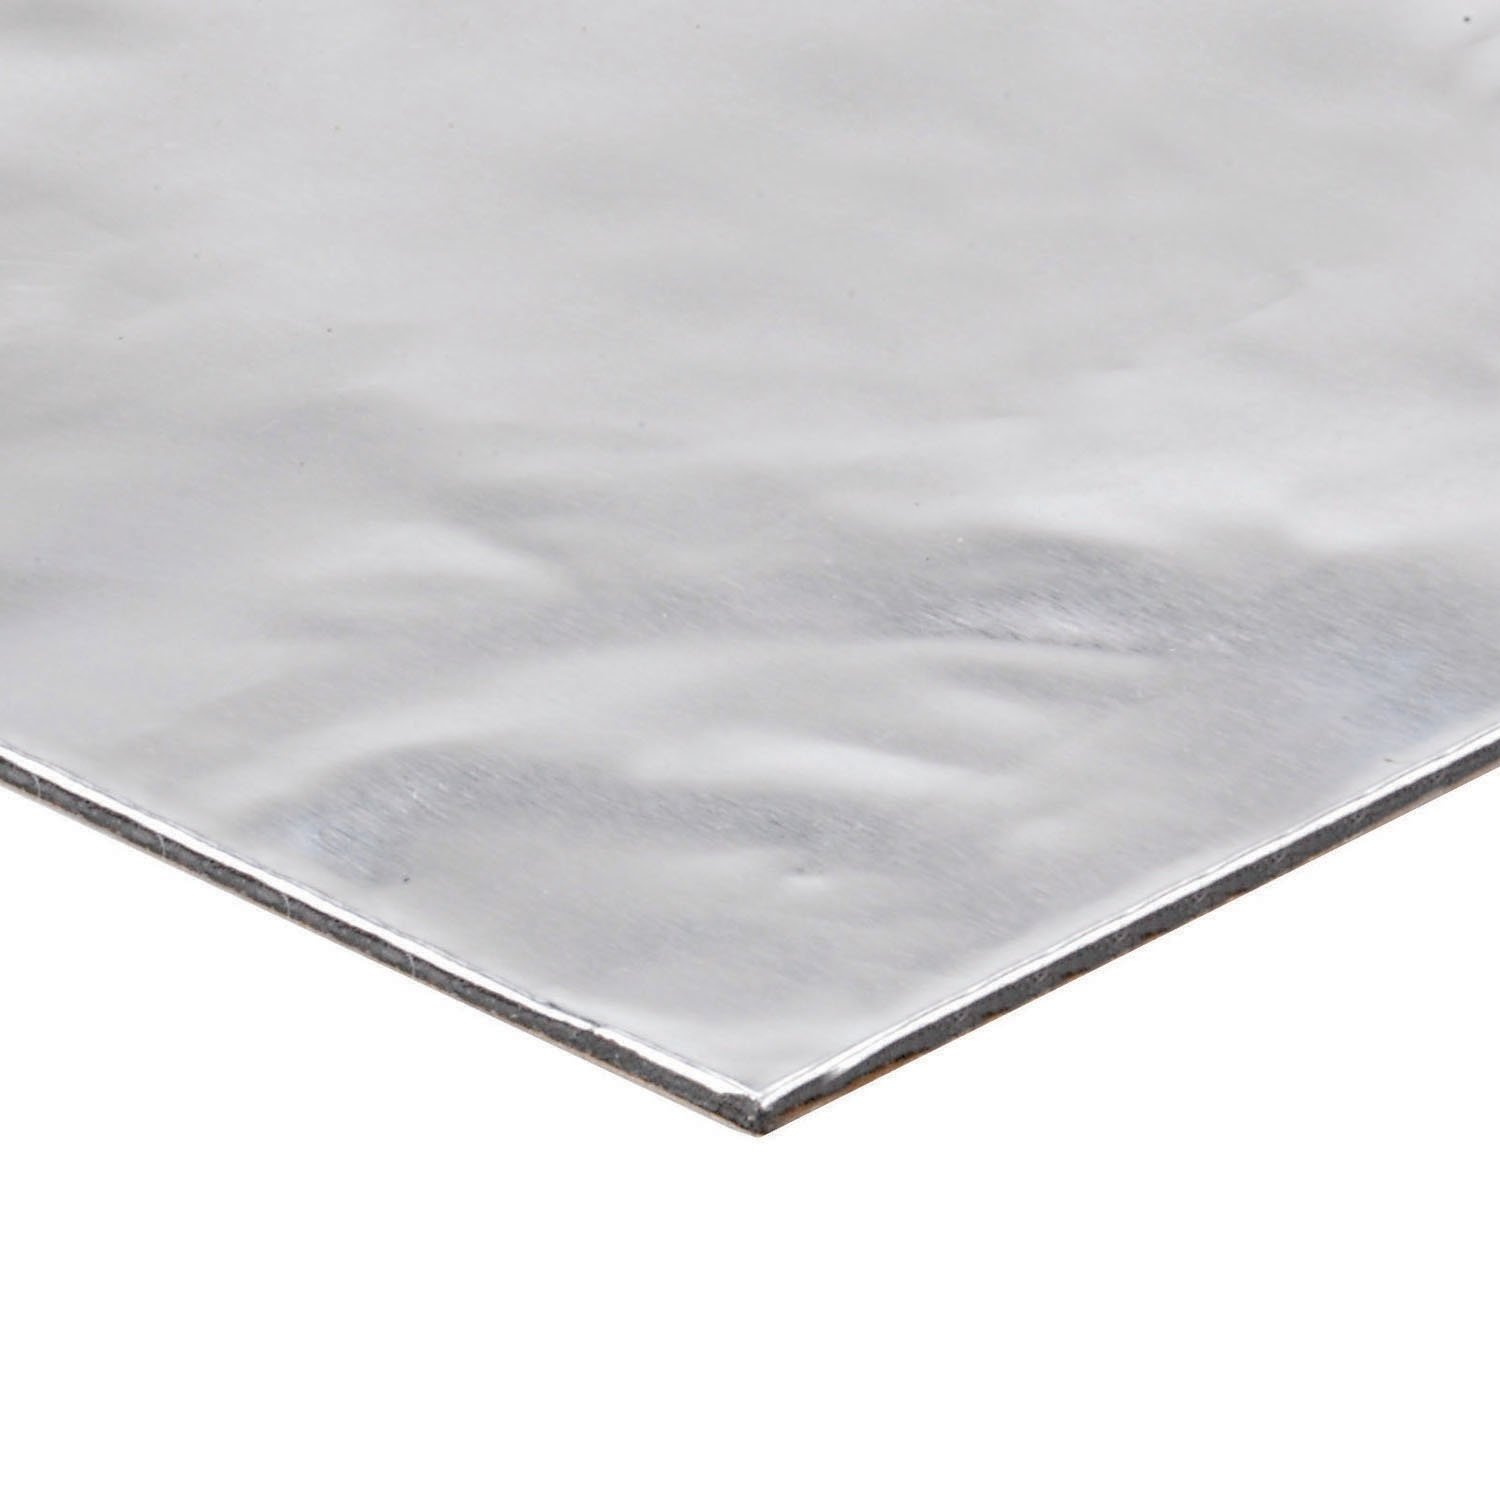 Design Engineering 050206 Boom Mat Sound 2mm Damping Material with Adhesive Backing, 12.5' x 24' (Pack of 6) 12.5 x 24 (Pack of 6) dei